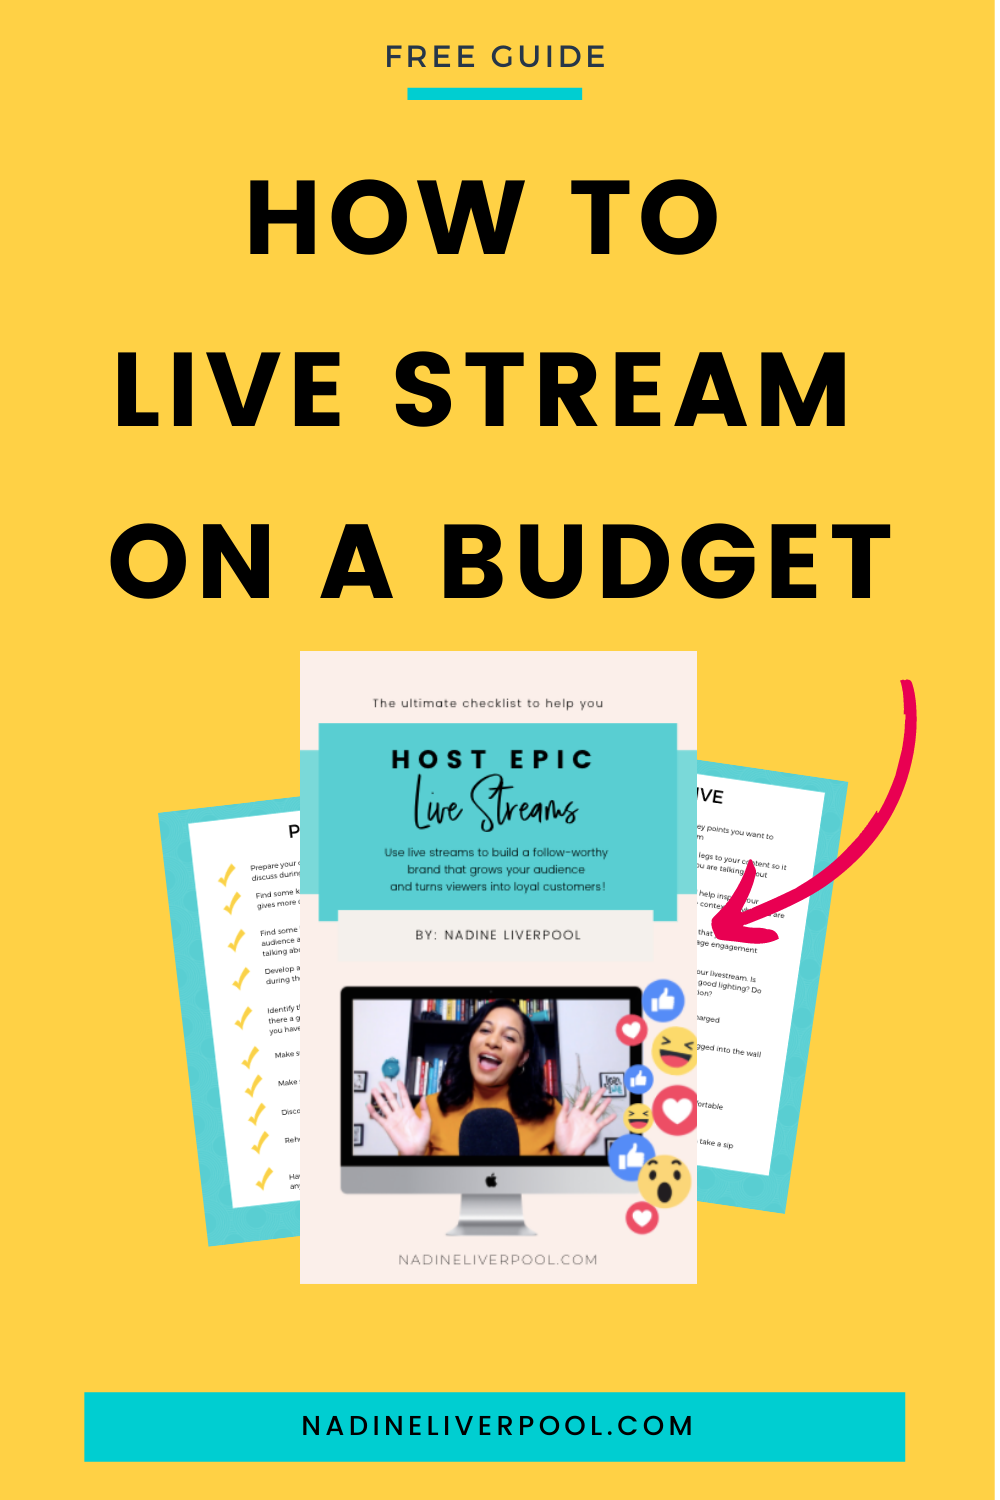 Best Live Streaming Equipment for Beginners (even if you have a SMALL Budget)